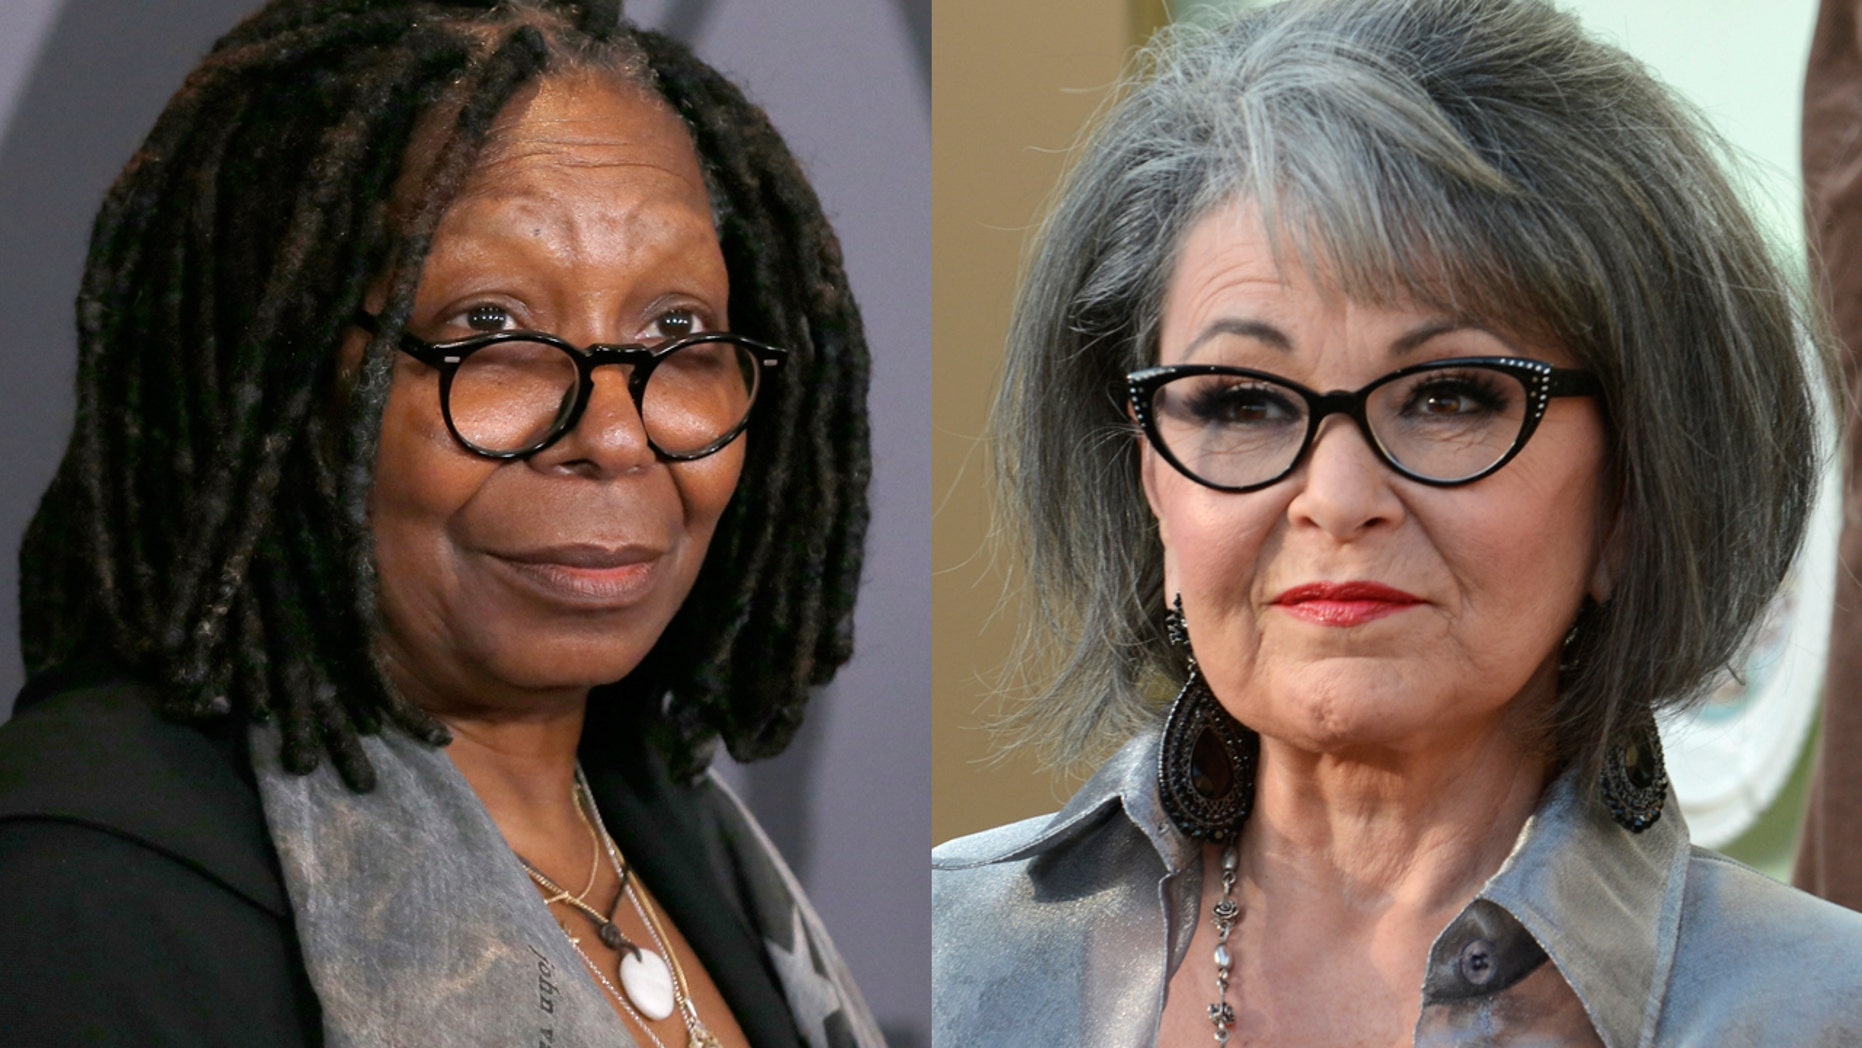 """Whoopi Goldberg has called out Roseanne Barr for retweeting a graphic Photoshopped image of her on social media. Goldberg addressed the incident on her May 30th episode of """"The View."""""""